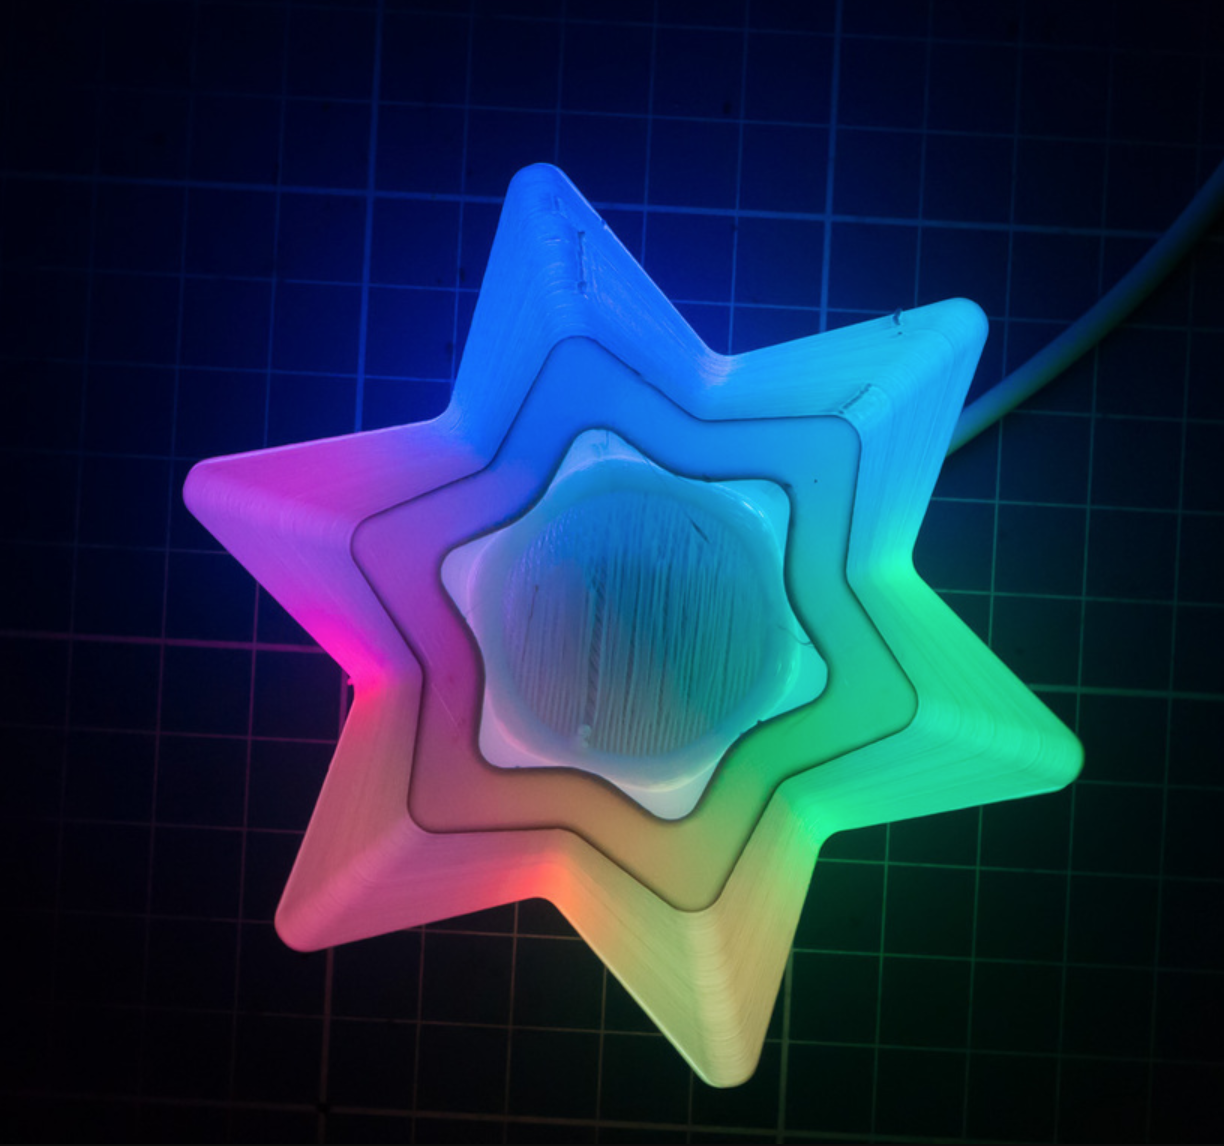 Capture d'écran 2017-10-31 à 15.56.01.png Download free STL file Christmas Decoration - Star with color LED Strip • 3D printable model, ewap